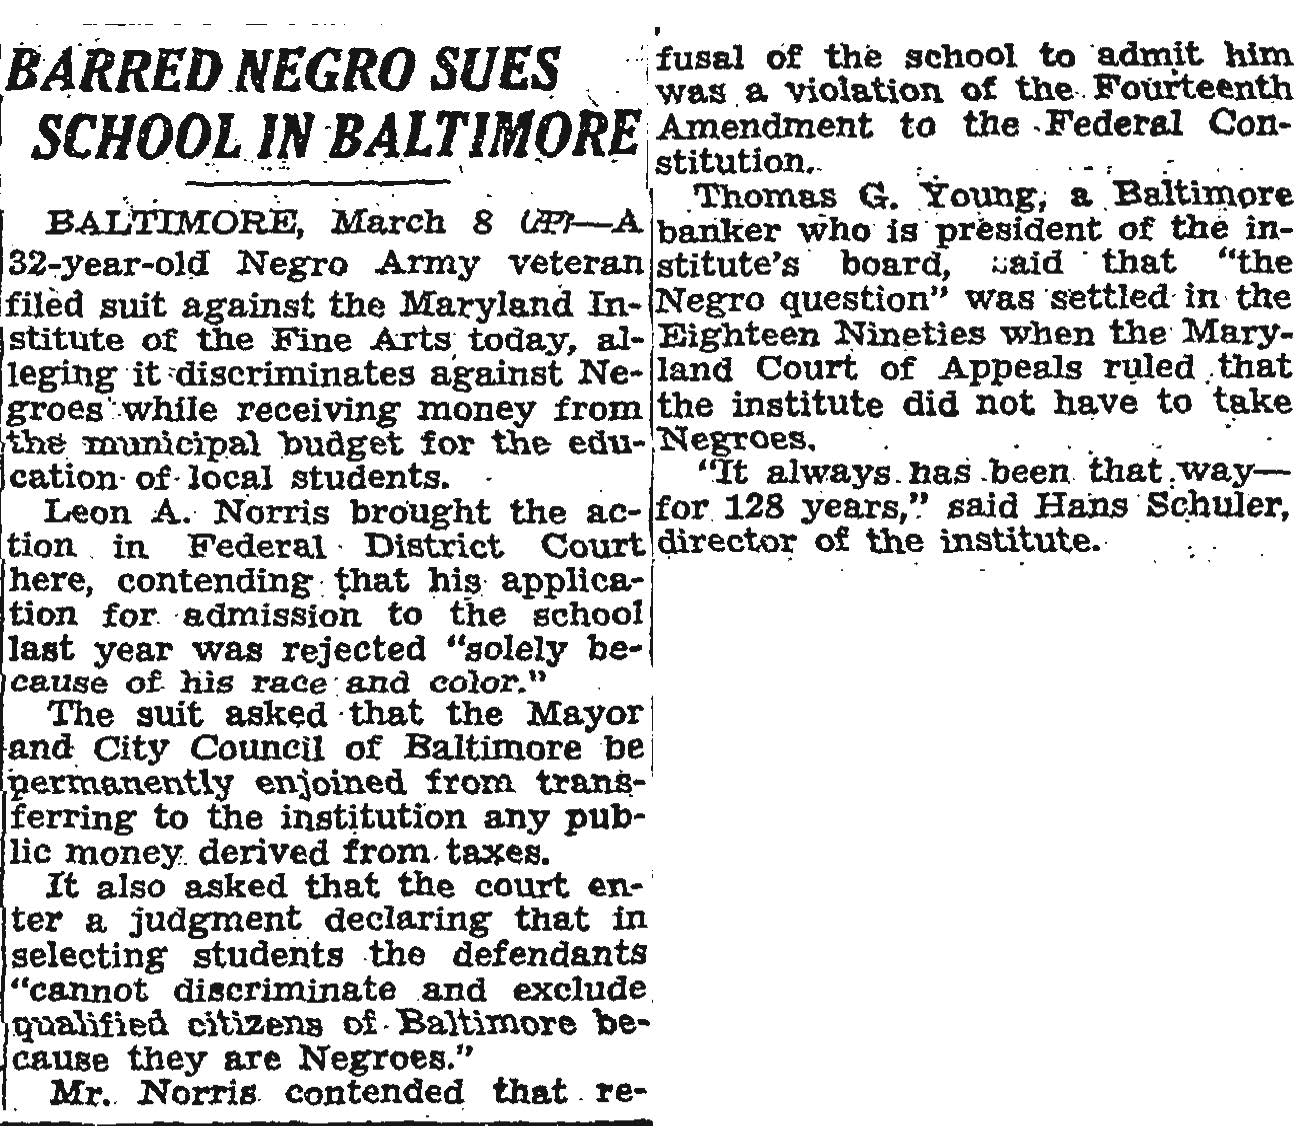 1947-3-9-BARRED_NEGRO_SUES_SCHOOL_IN_BA.jpg